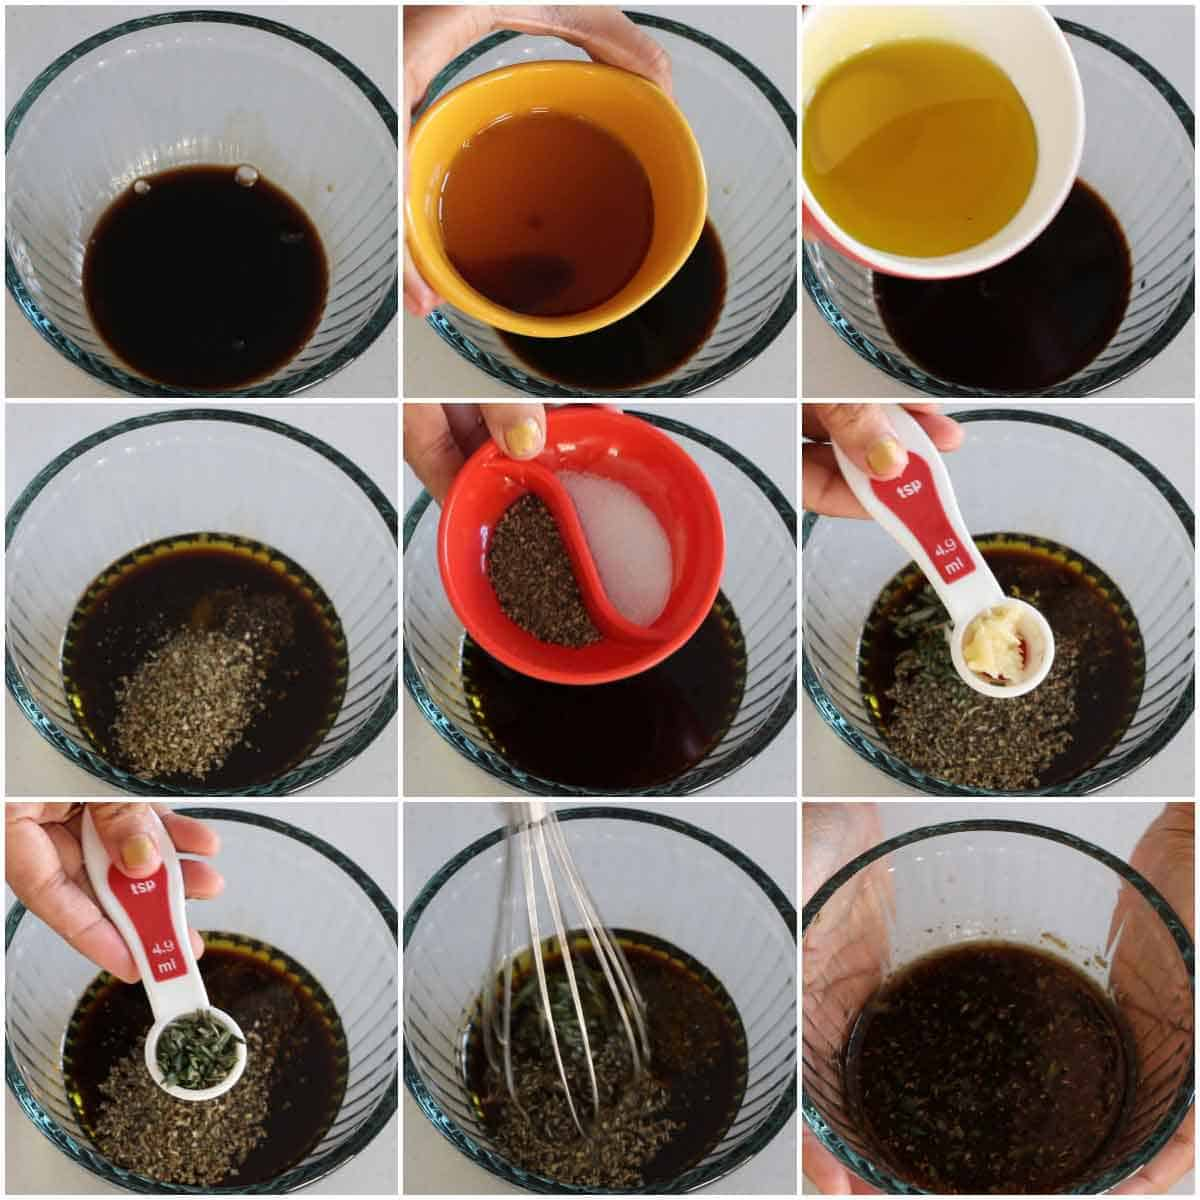 Step by step process of Balsamic Vinaigrette